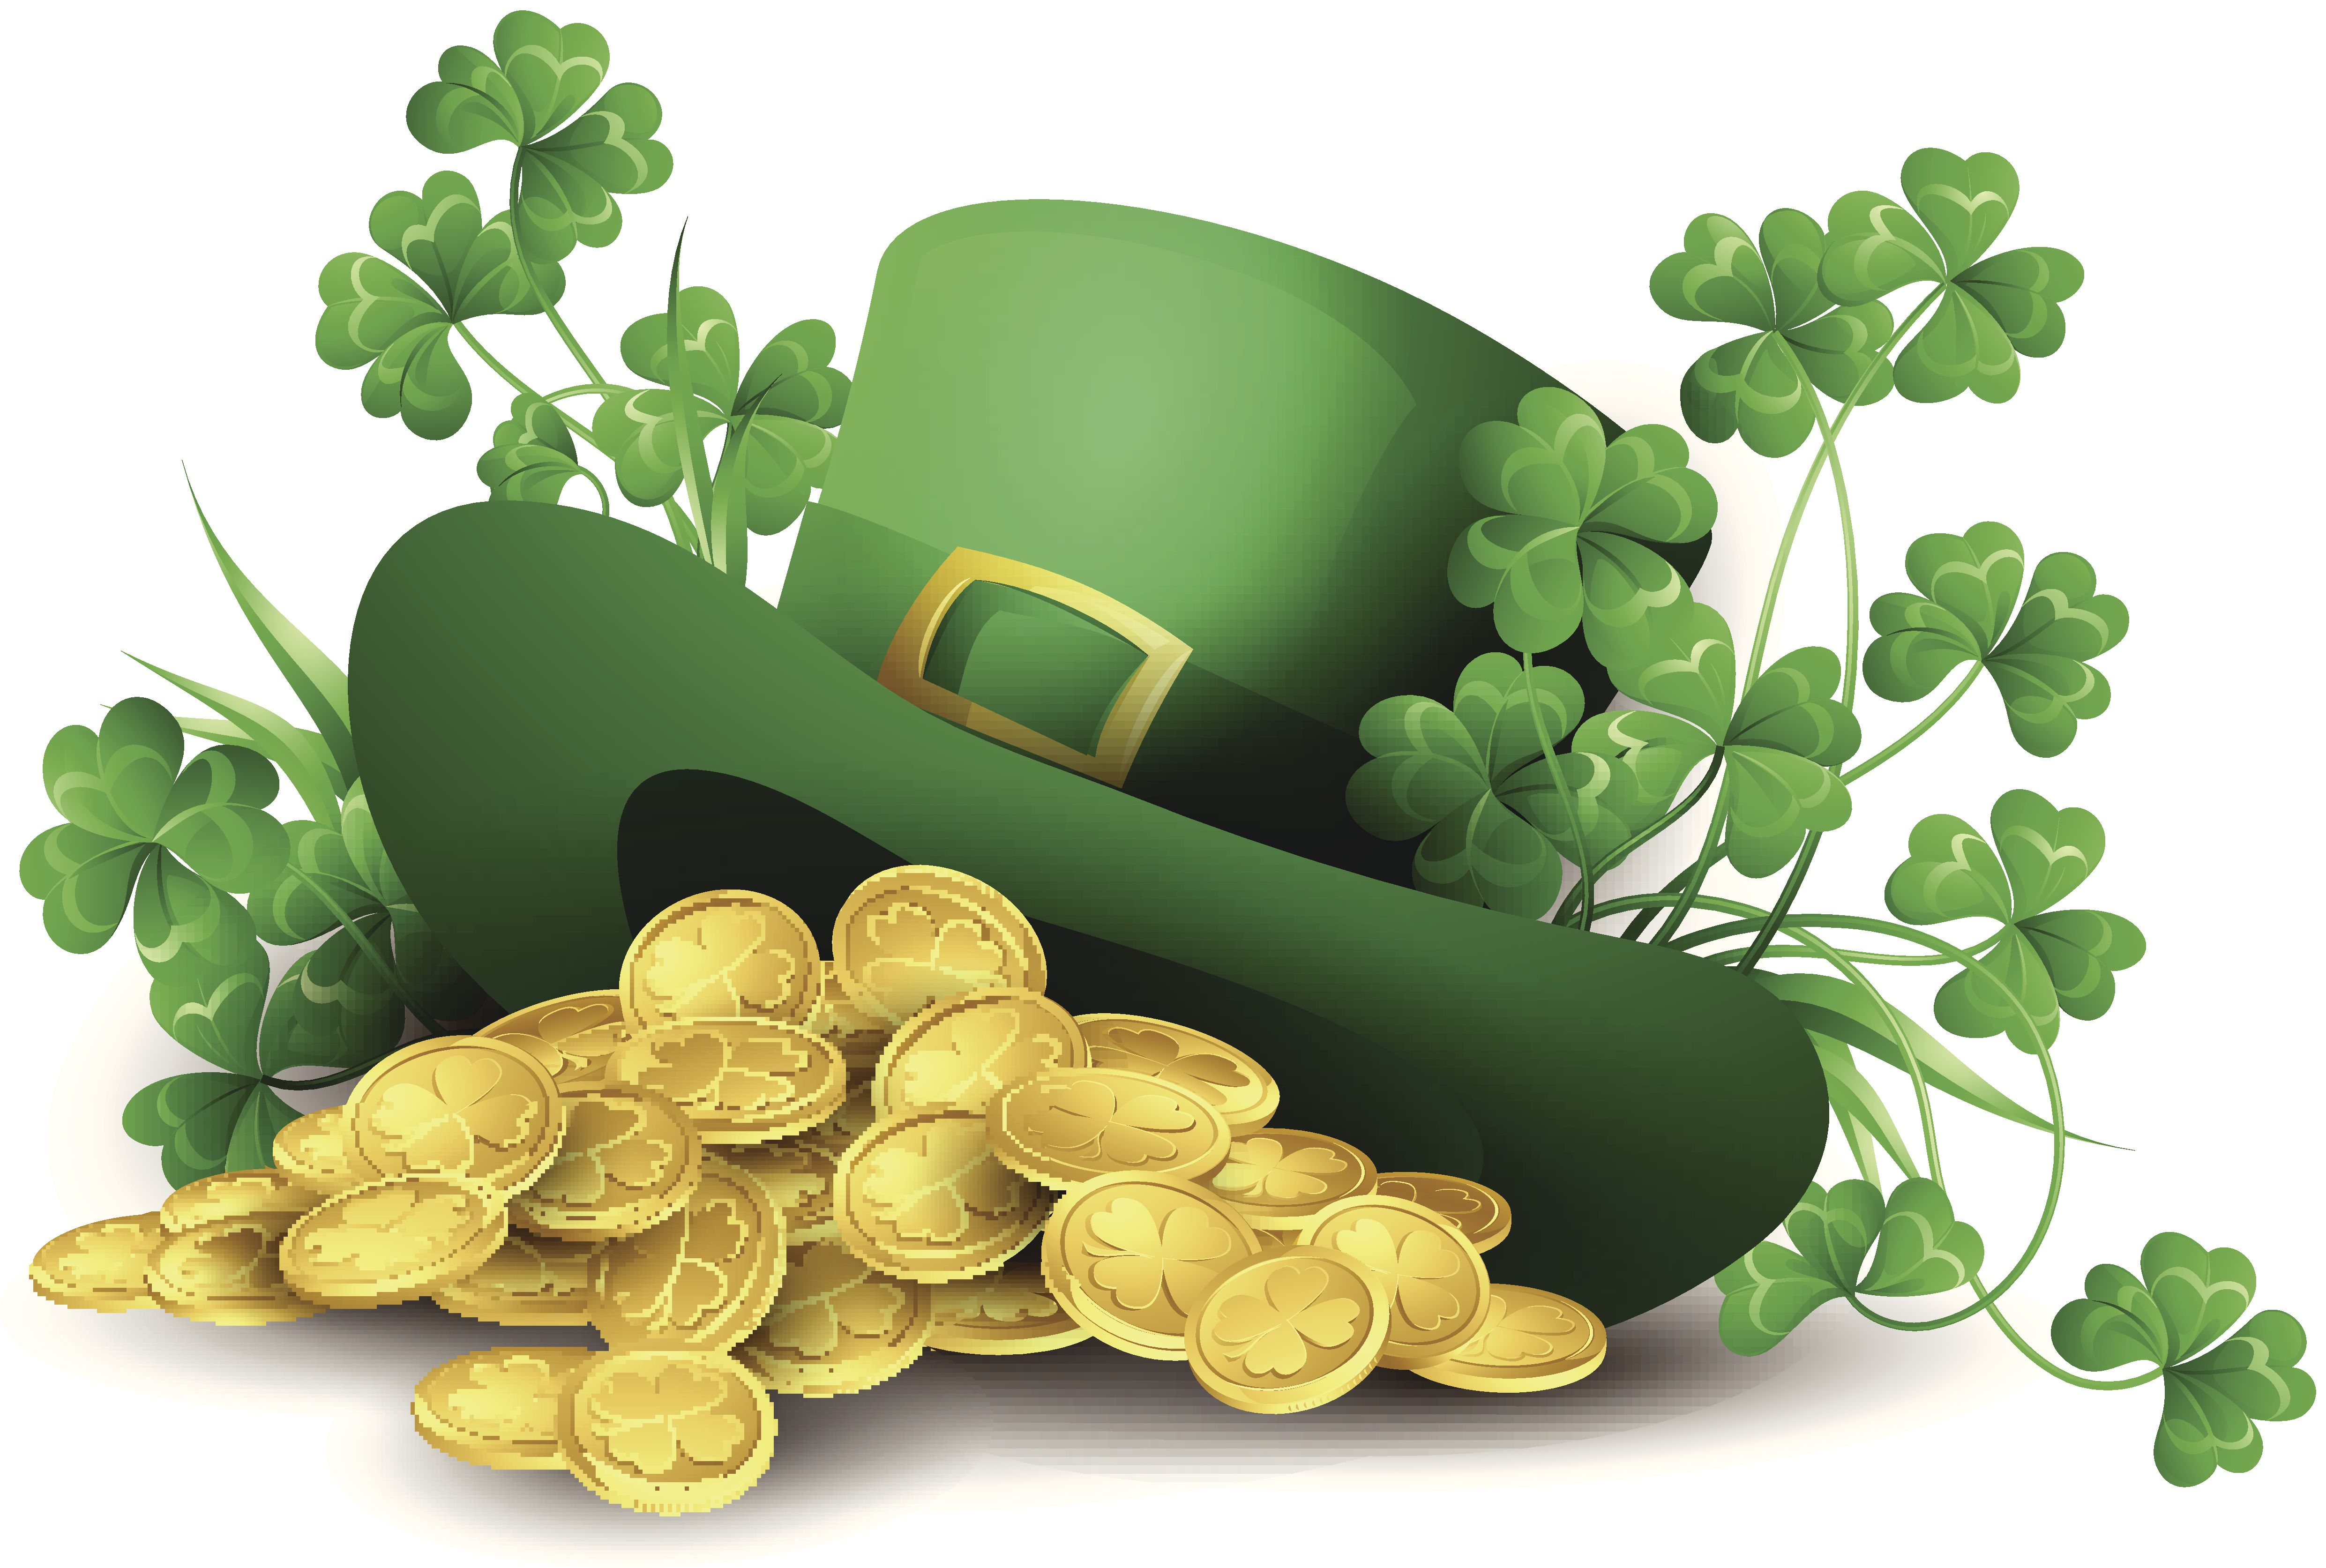 St. Patrick's Day hat with coins and shamrocks